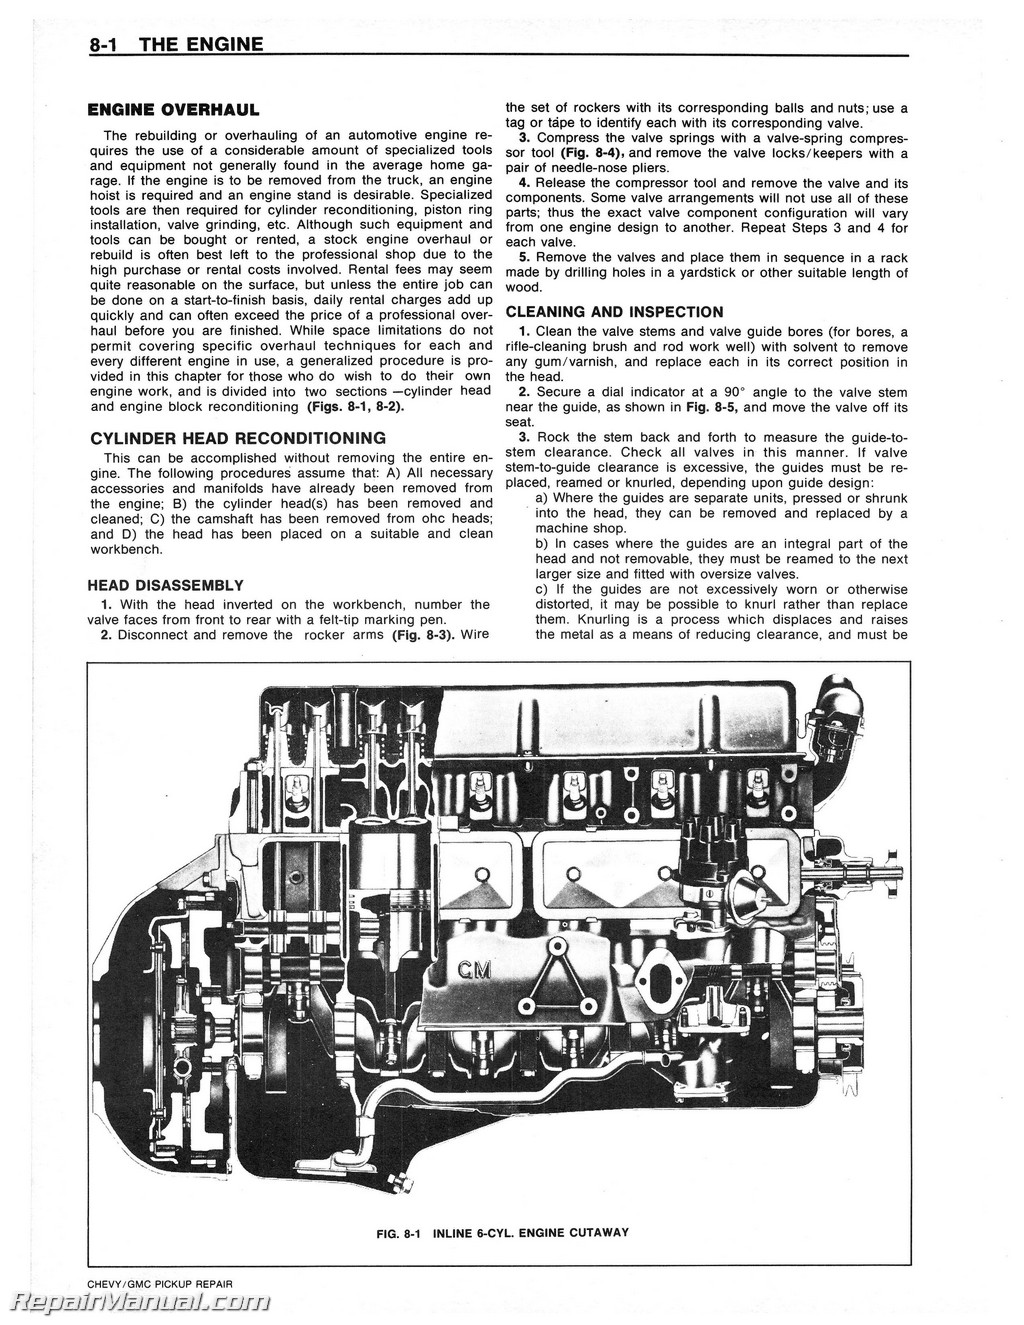 1978 chevrolet gmc pick up repair manual rh repairmanual com Lycoming IO-360 Overhaul Manual haynes chevrolet engine overhaul manual pdf